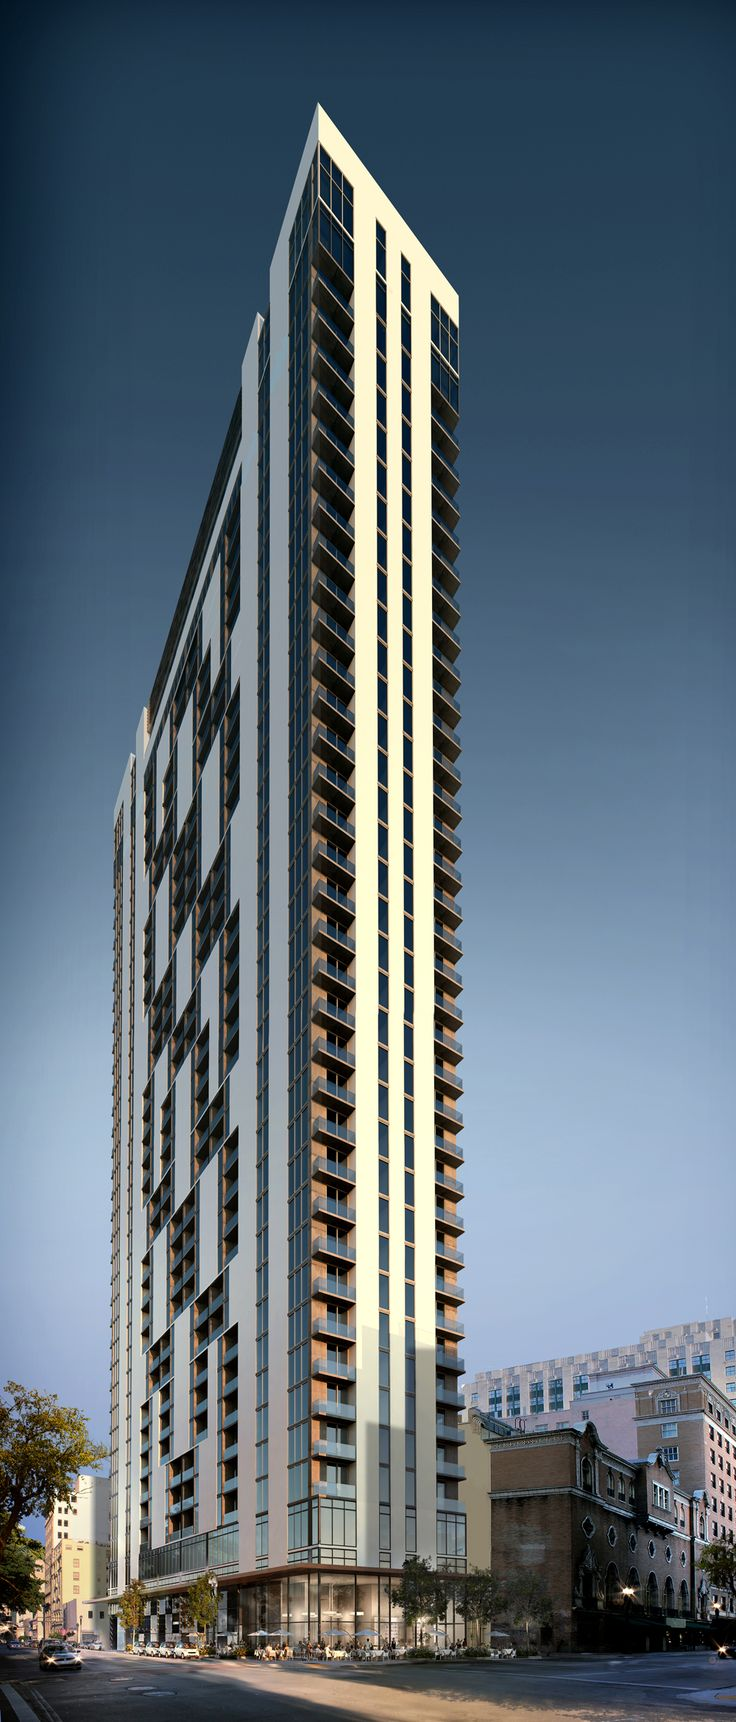 17 best images about high rise residential building on for Florida residential architects